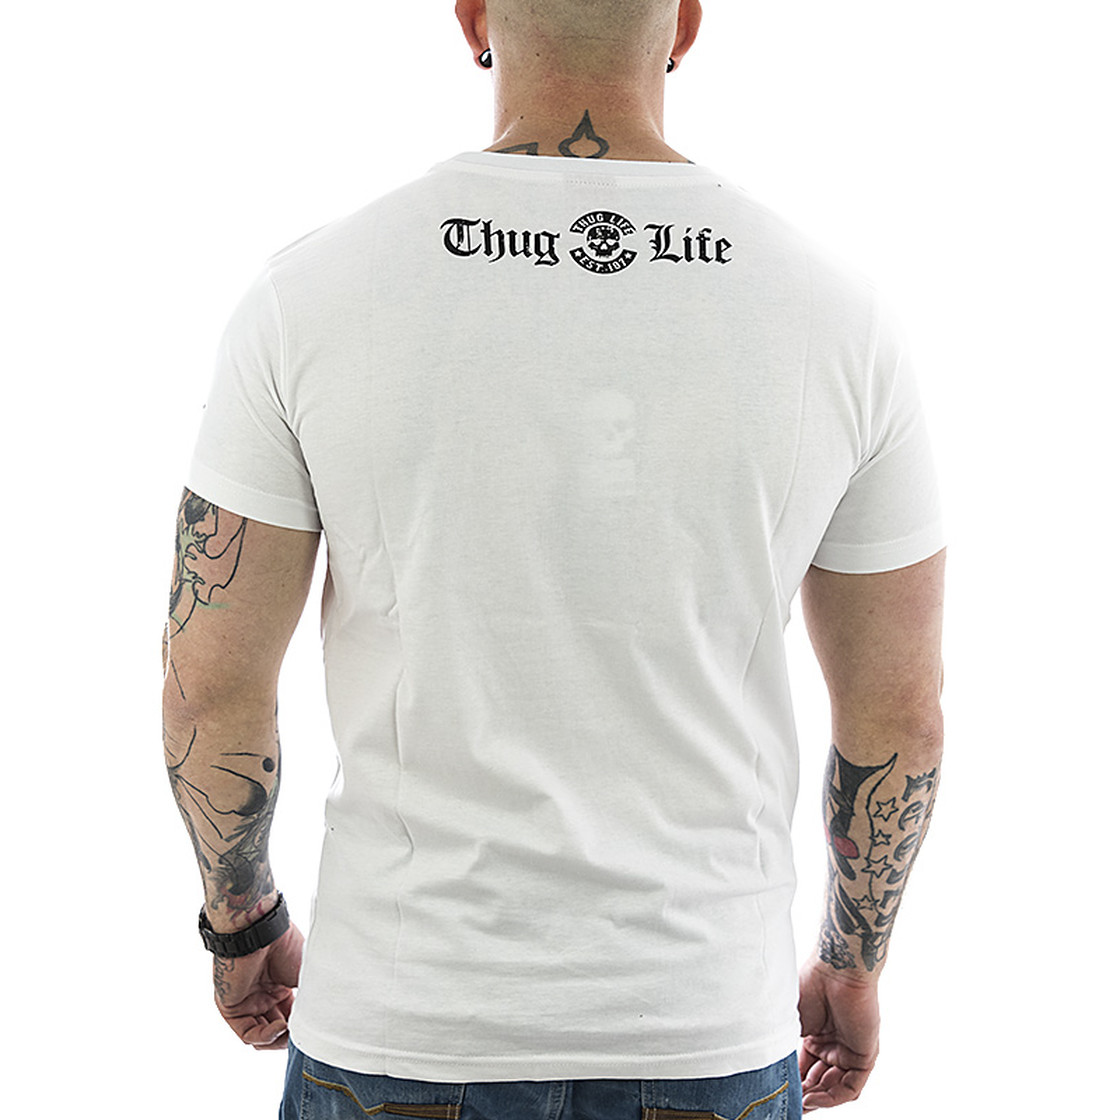 thug life herren t shirt established tl 131 white. Black Bedroom Furniture Sets. Home Design Ideas